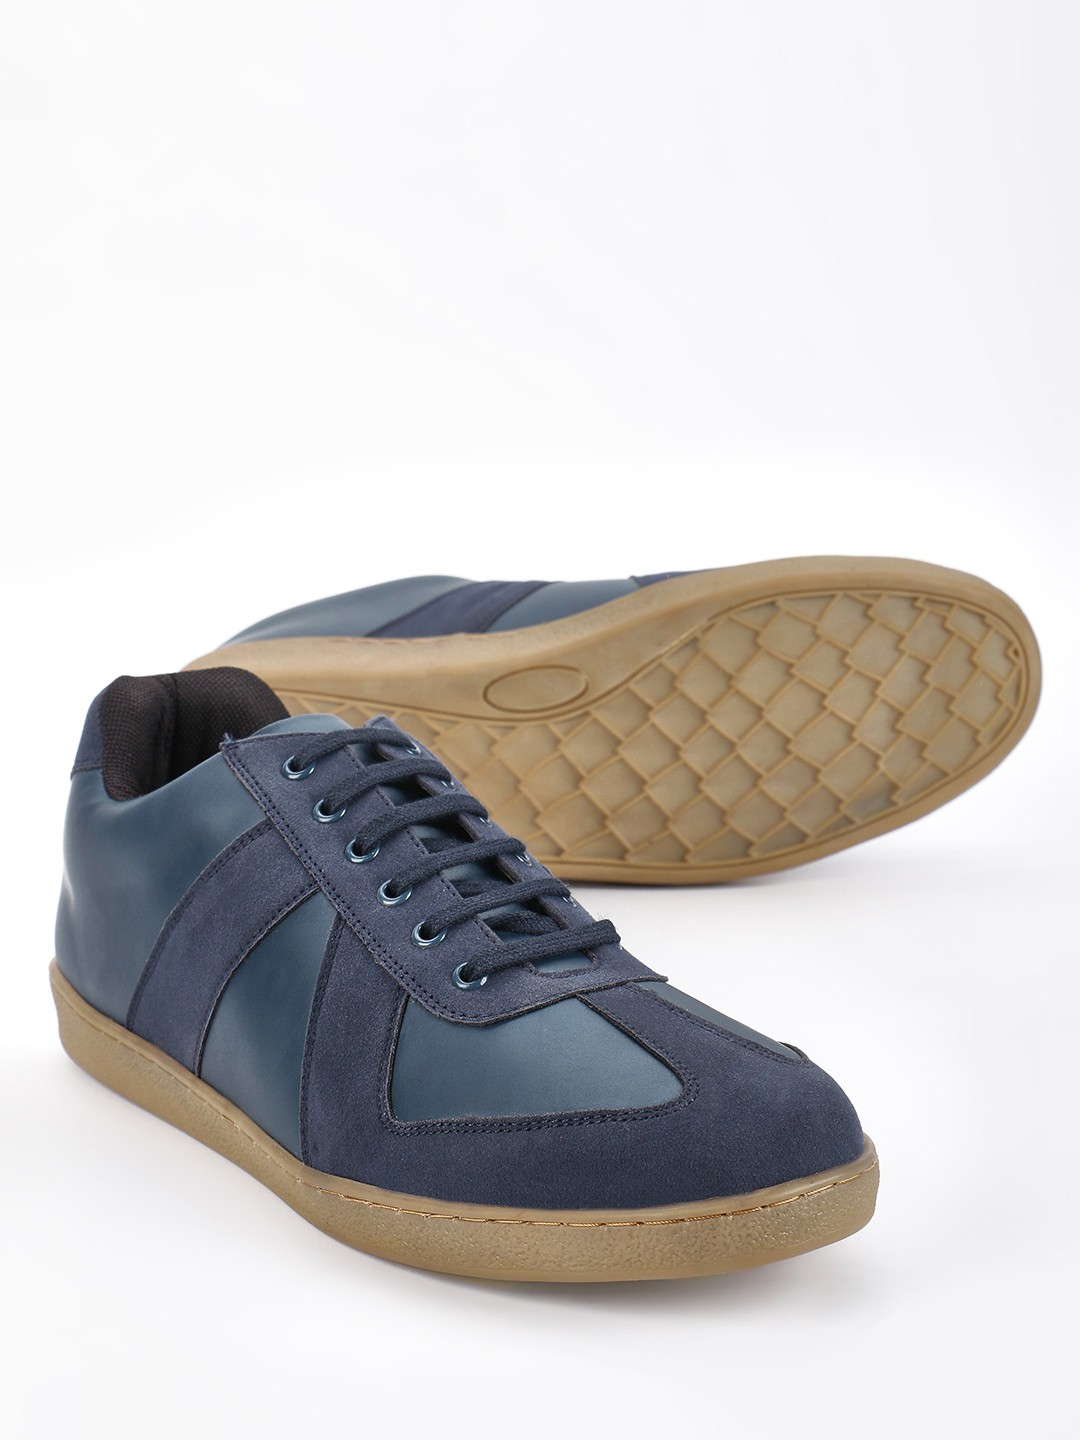 Kindred Blue Suede Panel Gum Sole Sneakers 1